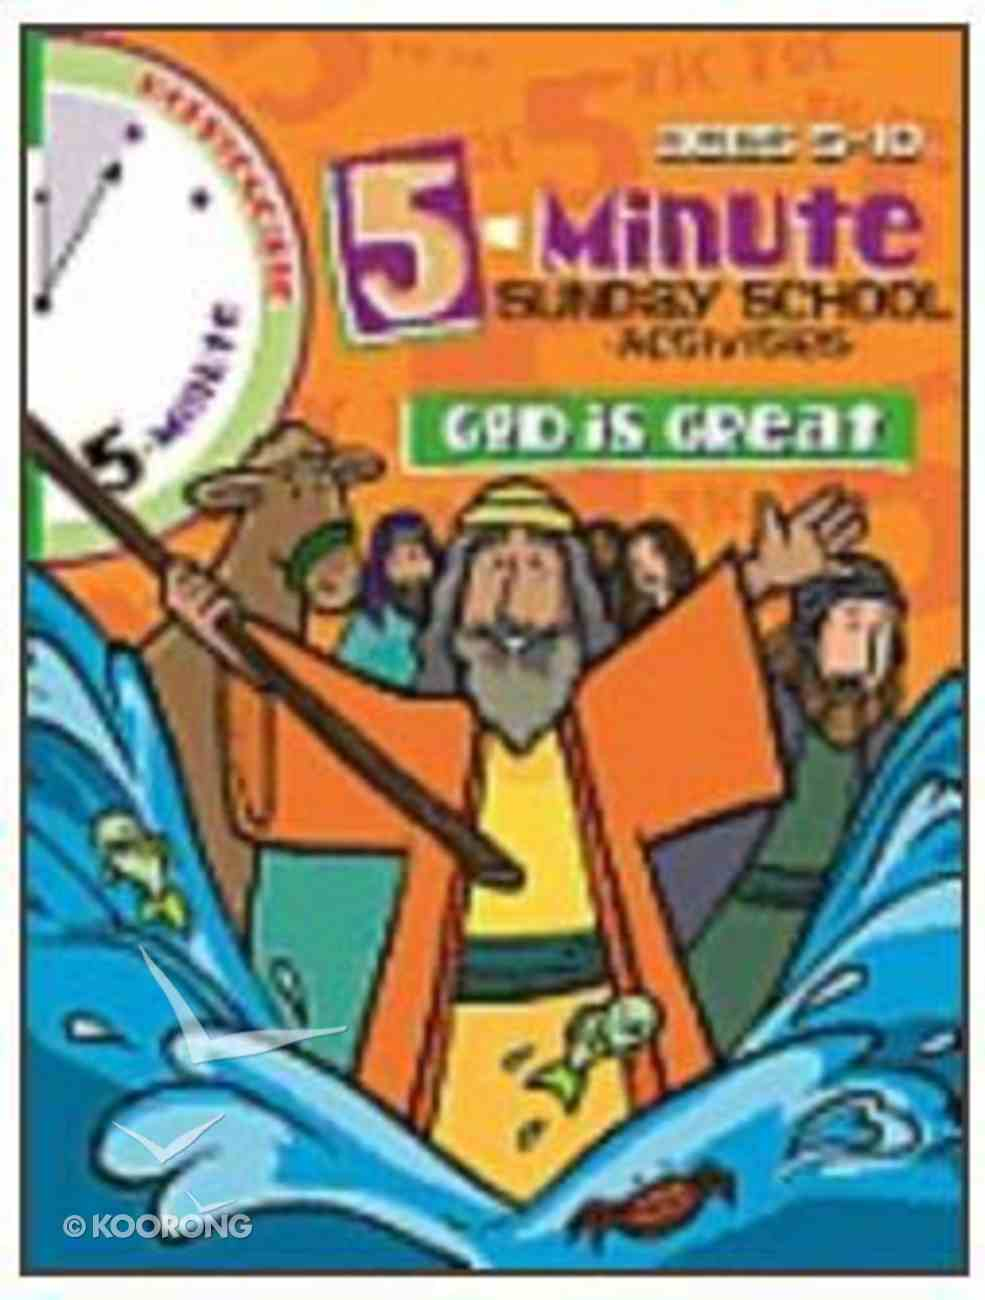 God is Great (Reproducible) (5 Minute Sunday School Activities Series) Paperback